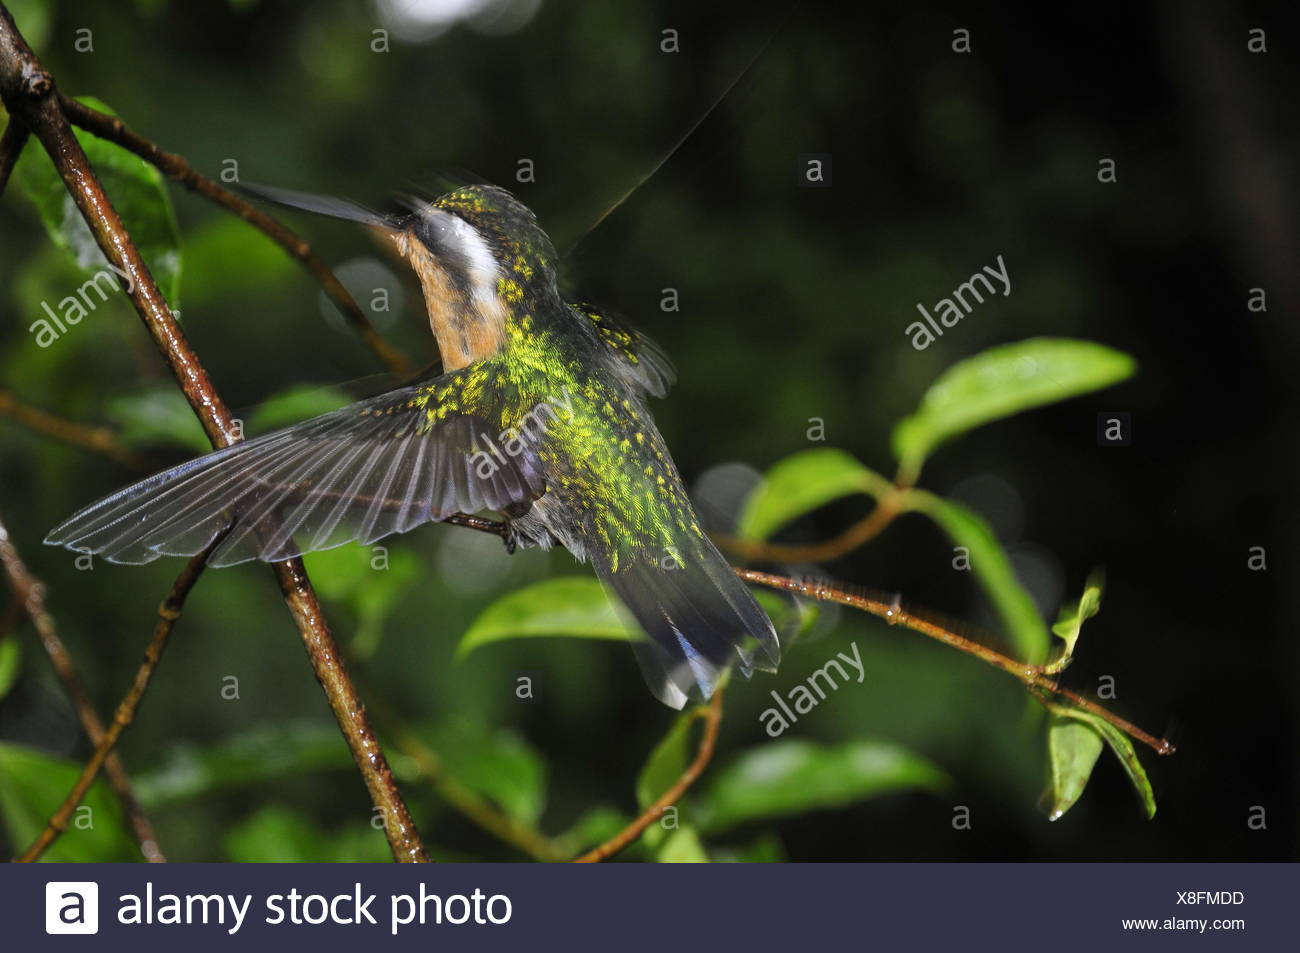 Close-Up Of Hummingbird Flapping Wings - Stock Image